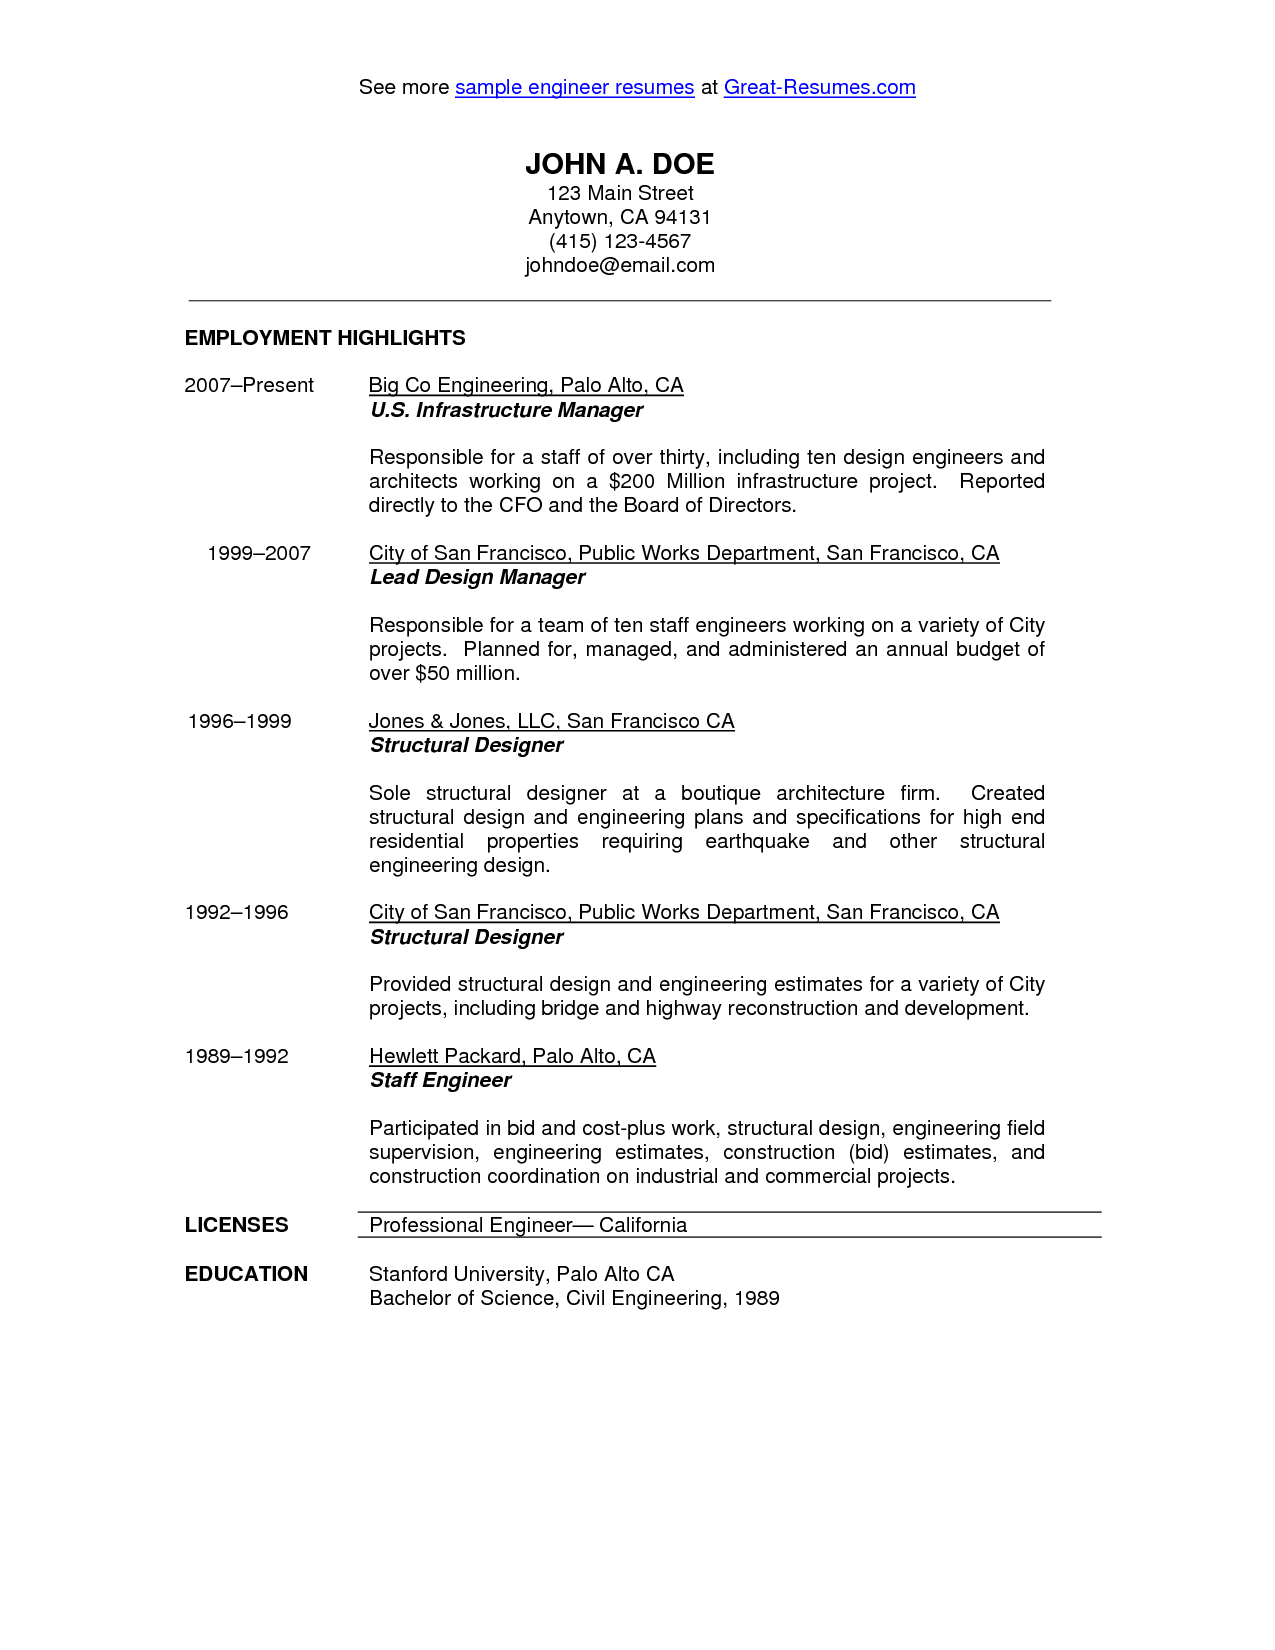 Resume Education Example Unique Civil Engineer Resume Sample  Httpwwwresumecareercivil Inspiration Design